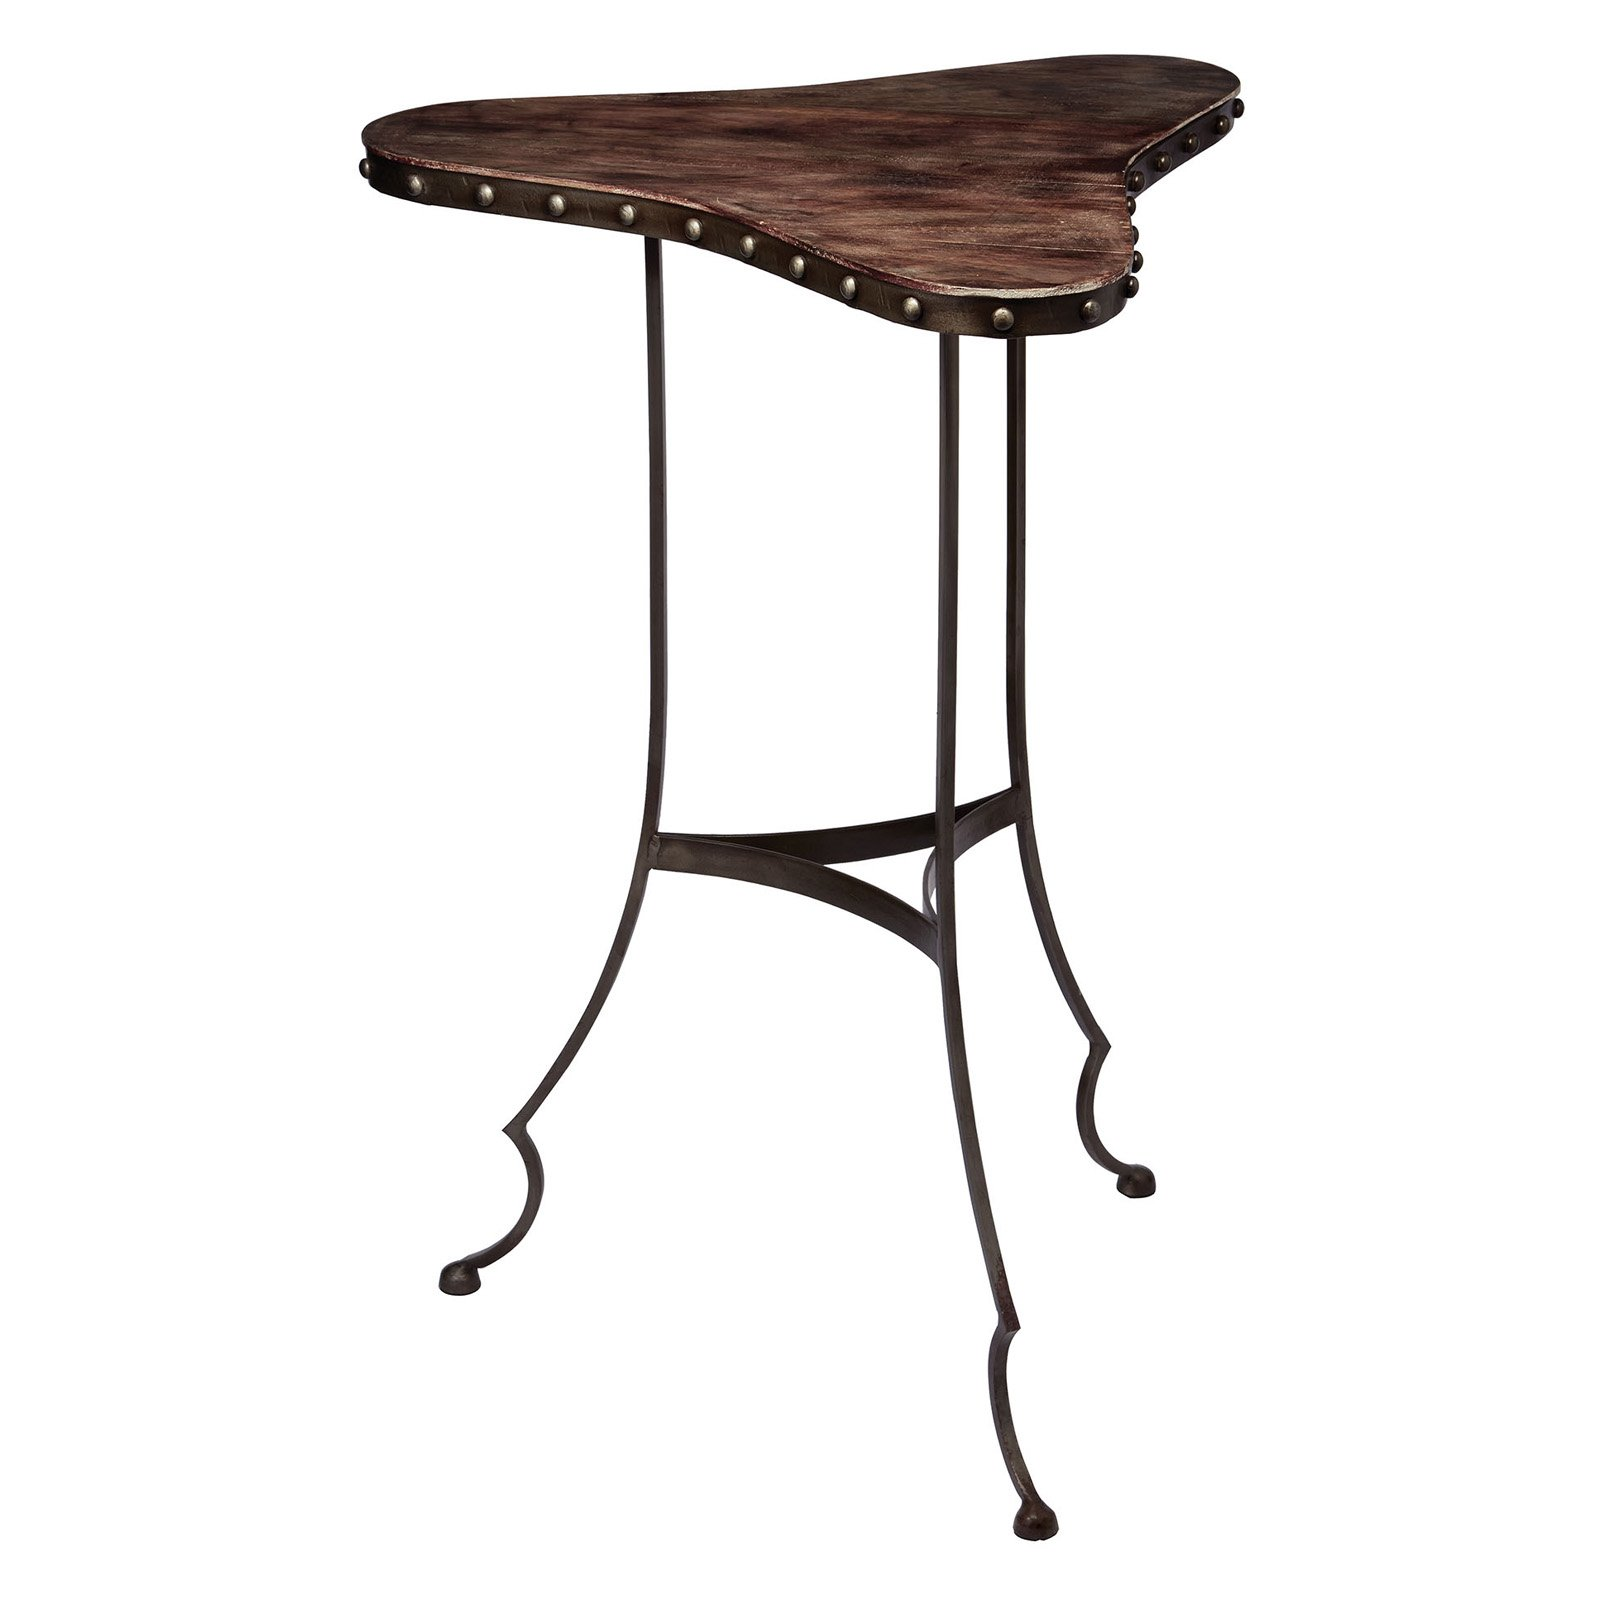 Dimond Home Clover End Table by Dimond Home